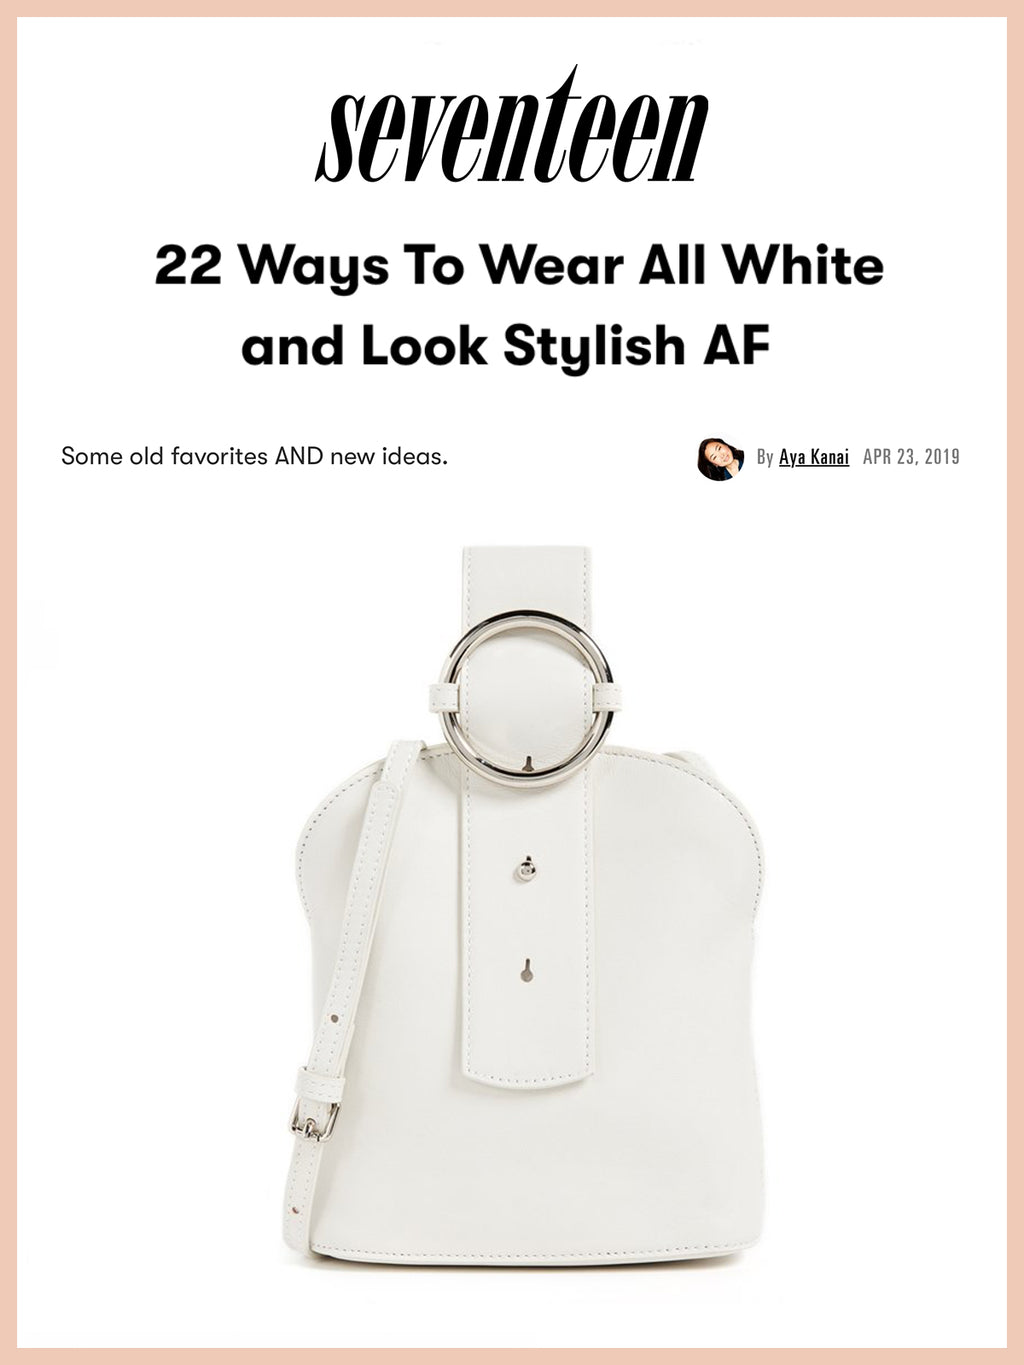 SEVENTEEN, 22 Ways To Wear All White and Look Stylish